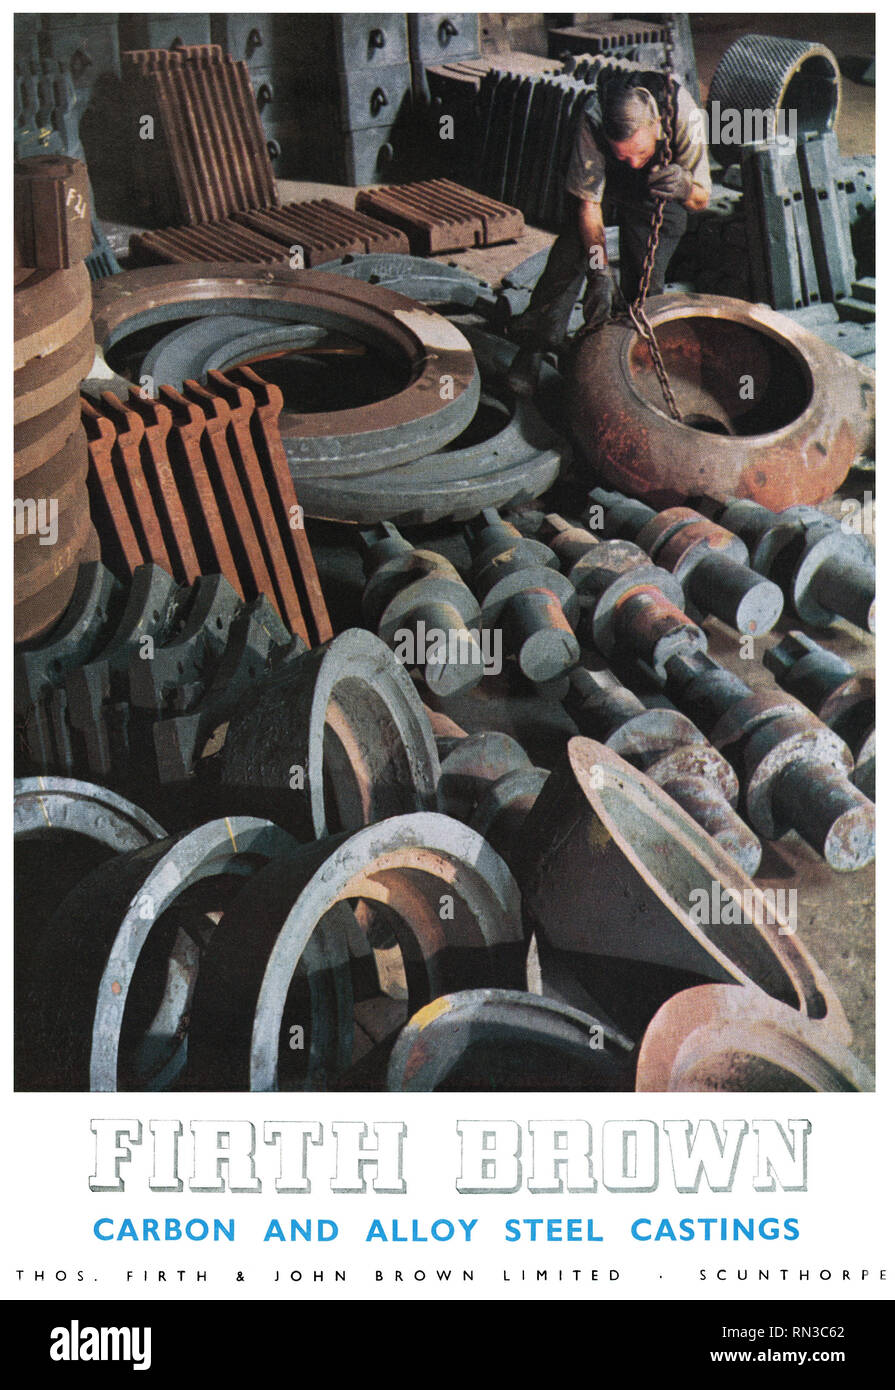 1954 British advertisement for Firth Brown carbon and alloy steel castings. - Stock Image